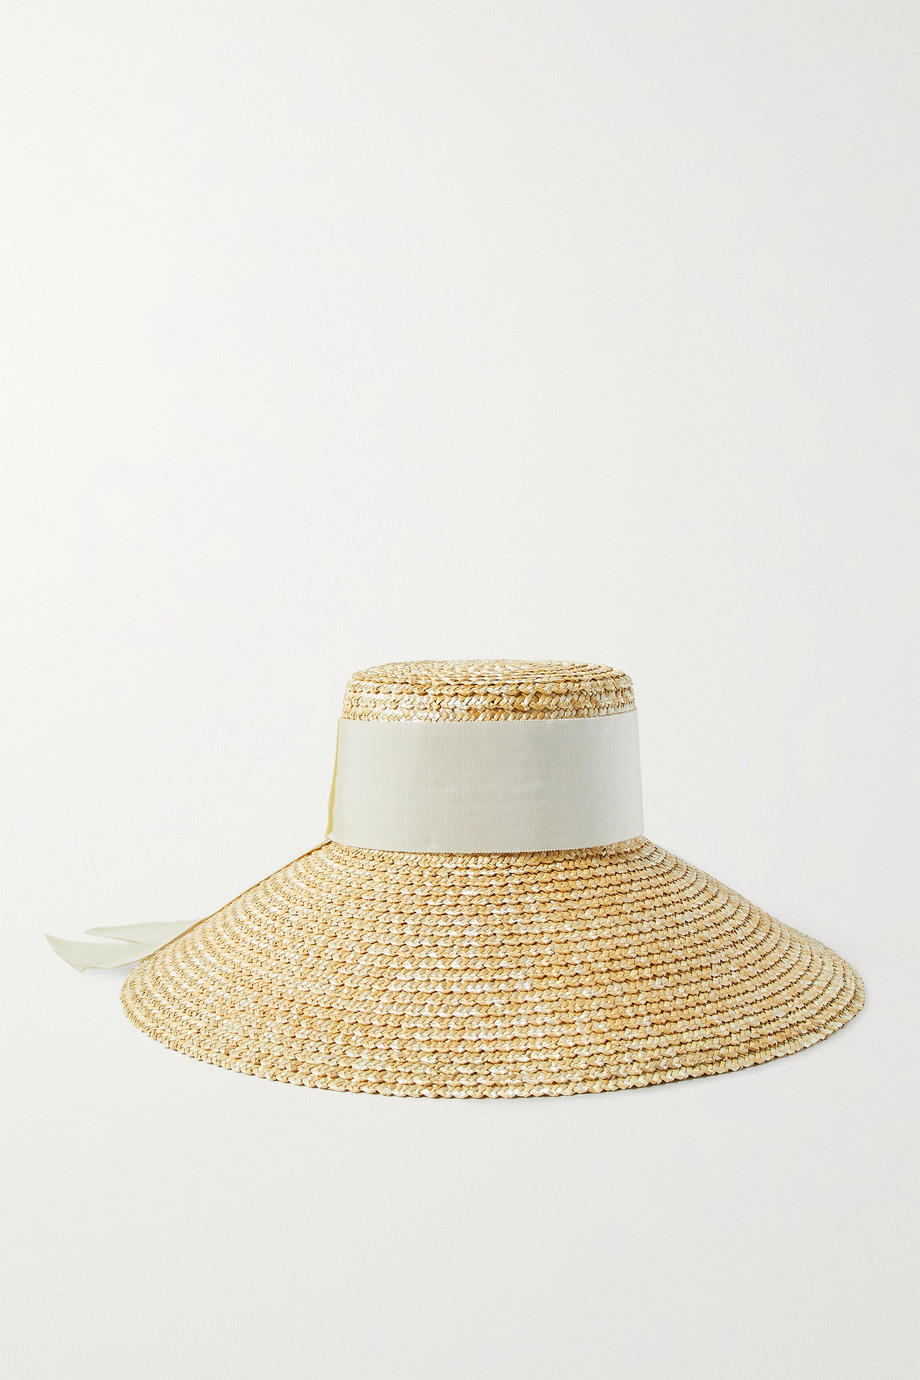 EUGENIA KIM Mirabel grosgrain-trimmed straw hat